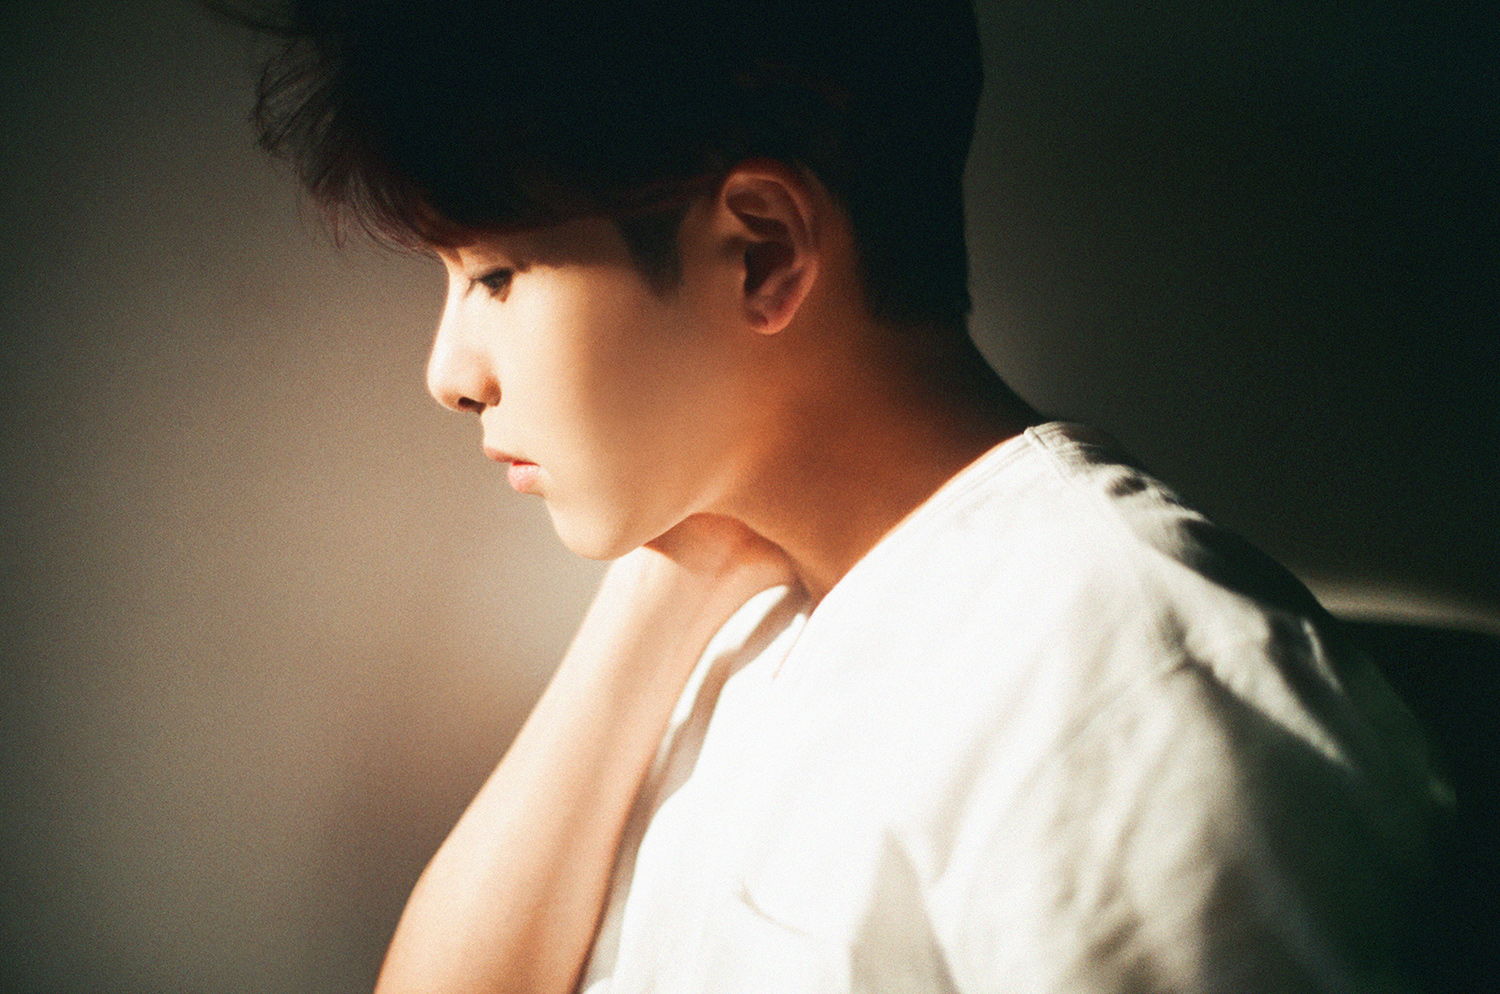 Super Junior's Ryeowook Asks Fans to Refrain From Sharing Fancams of His Concert